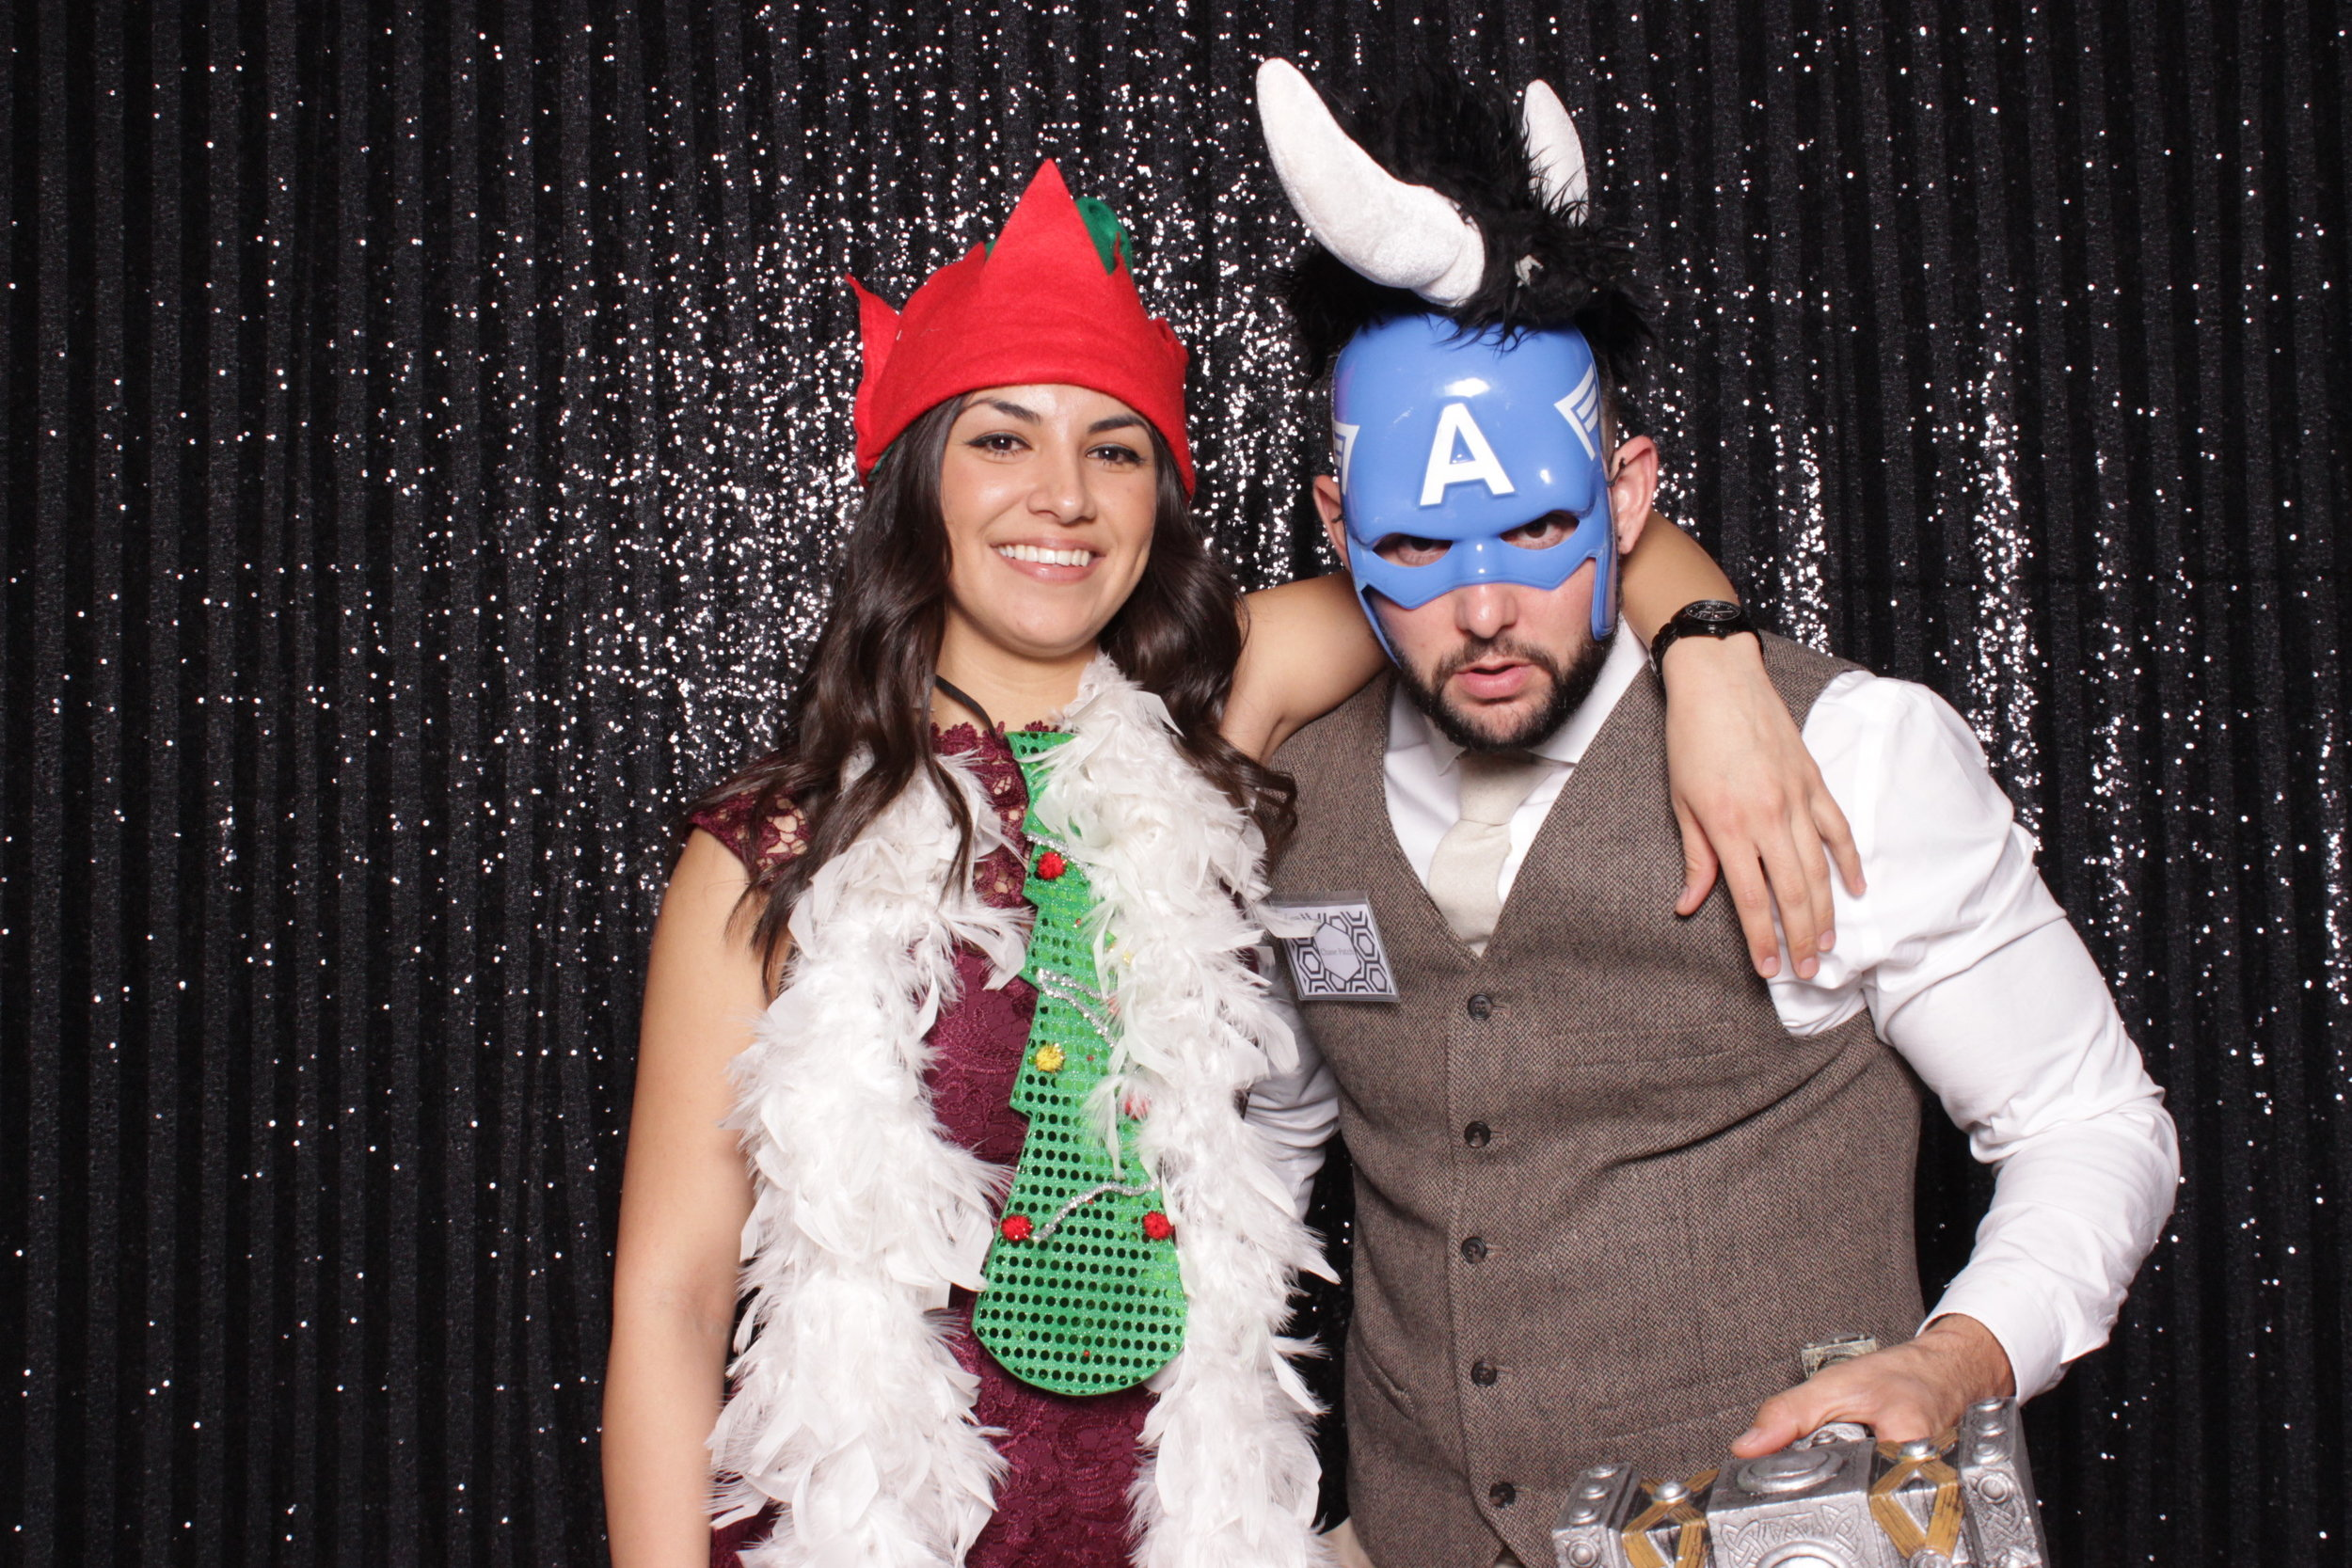 Chico-photo-booth-rental-in-town